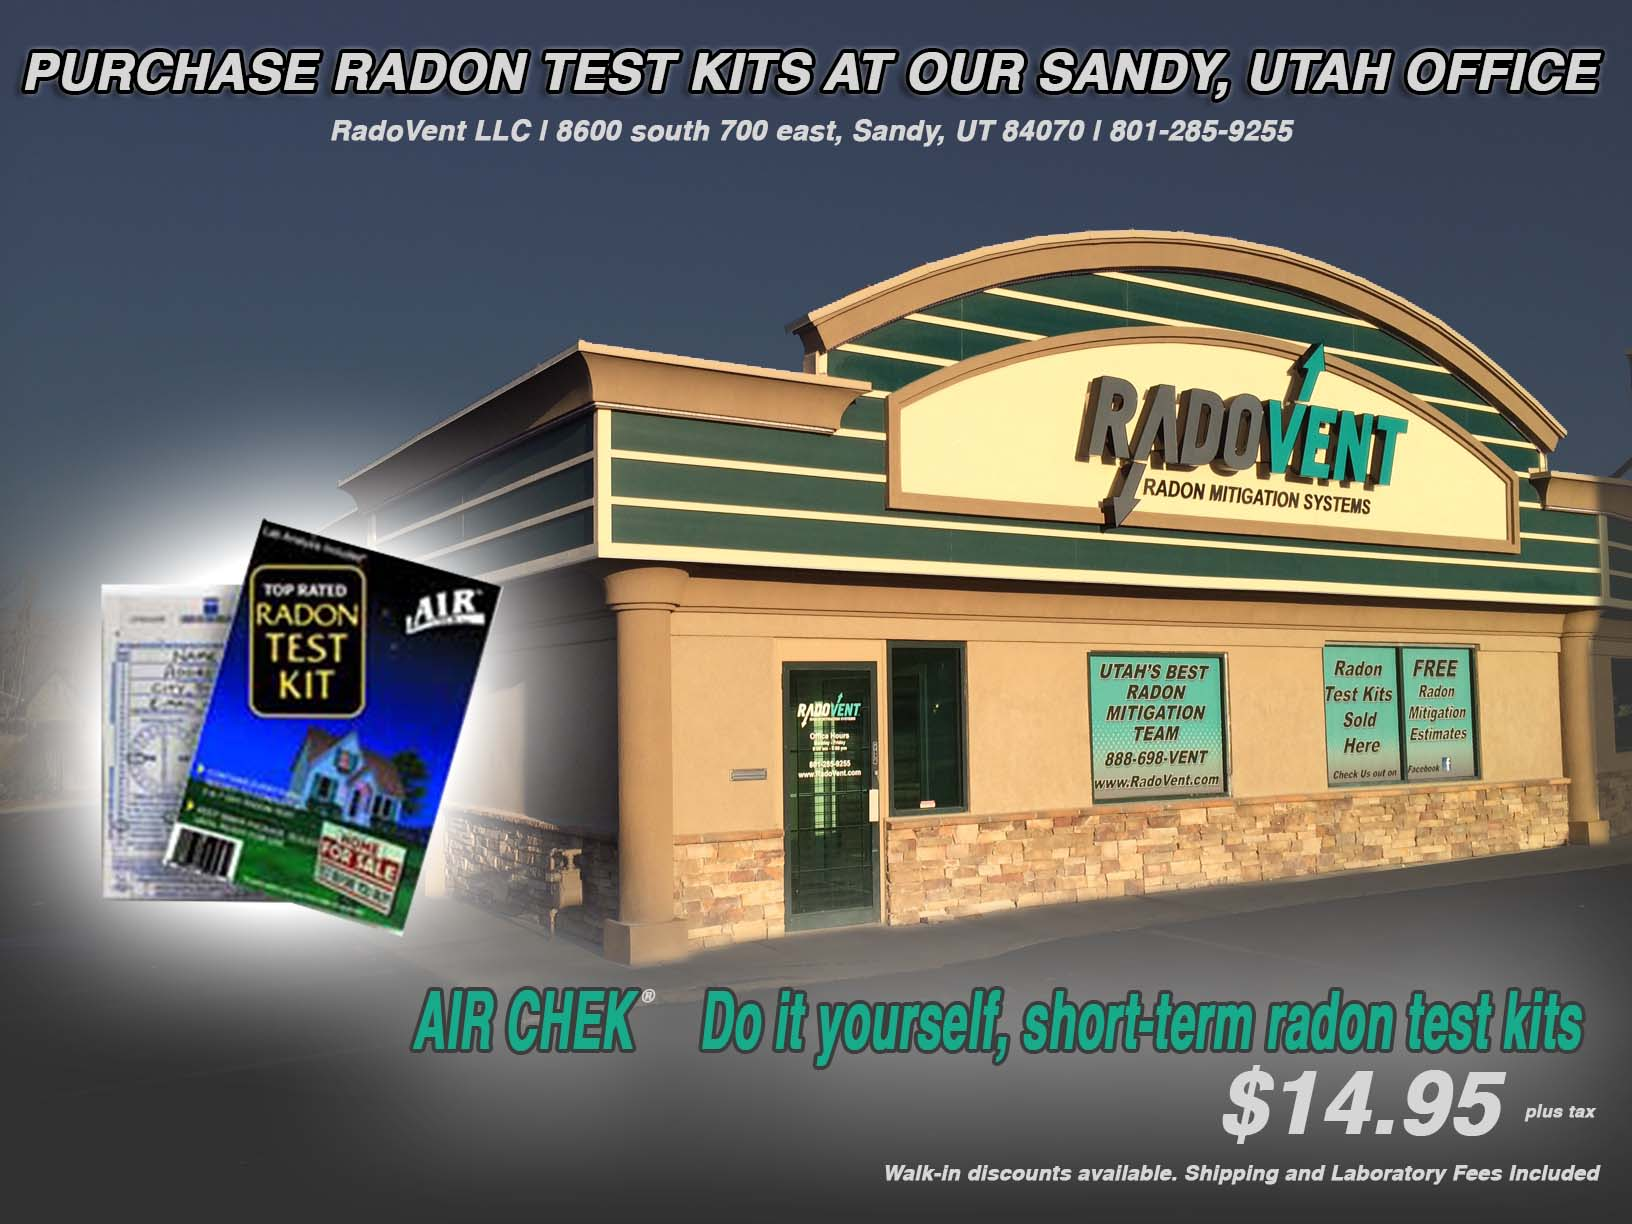 Utah radon mitigation company 1 local radon remediation experts - The office radon test kit ...